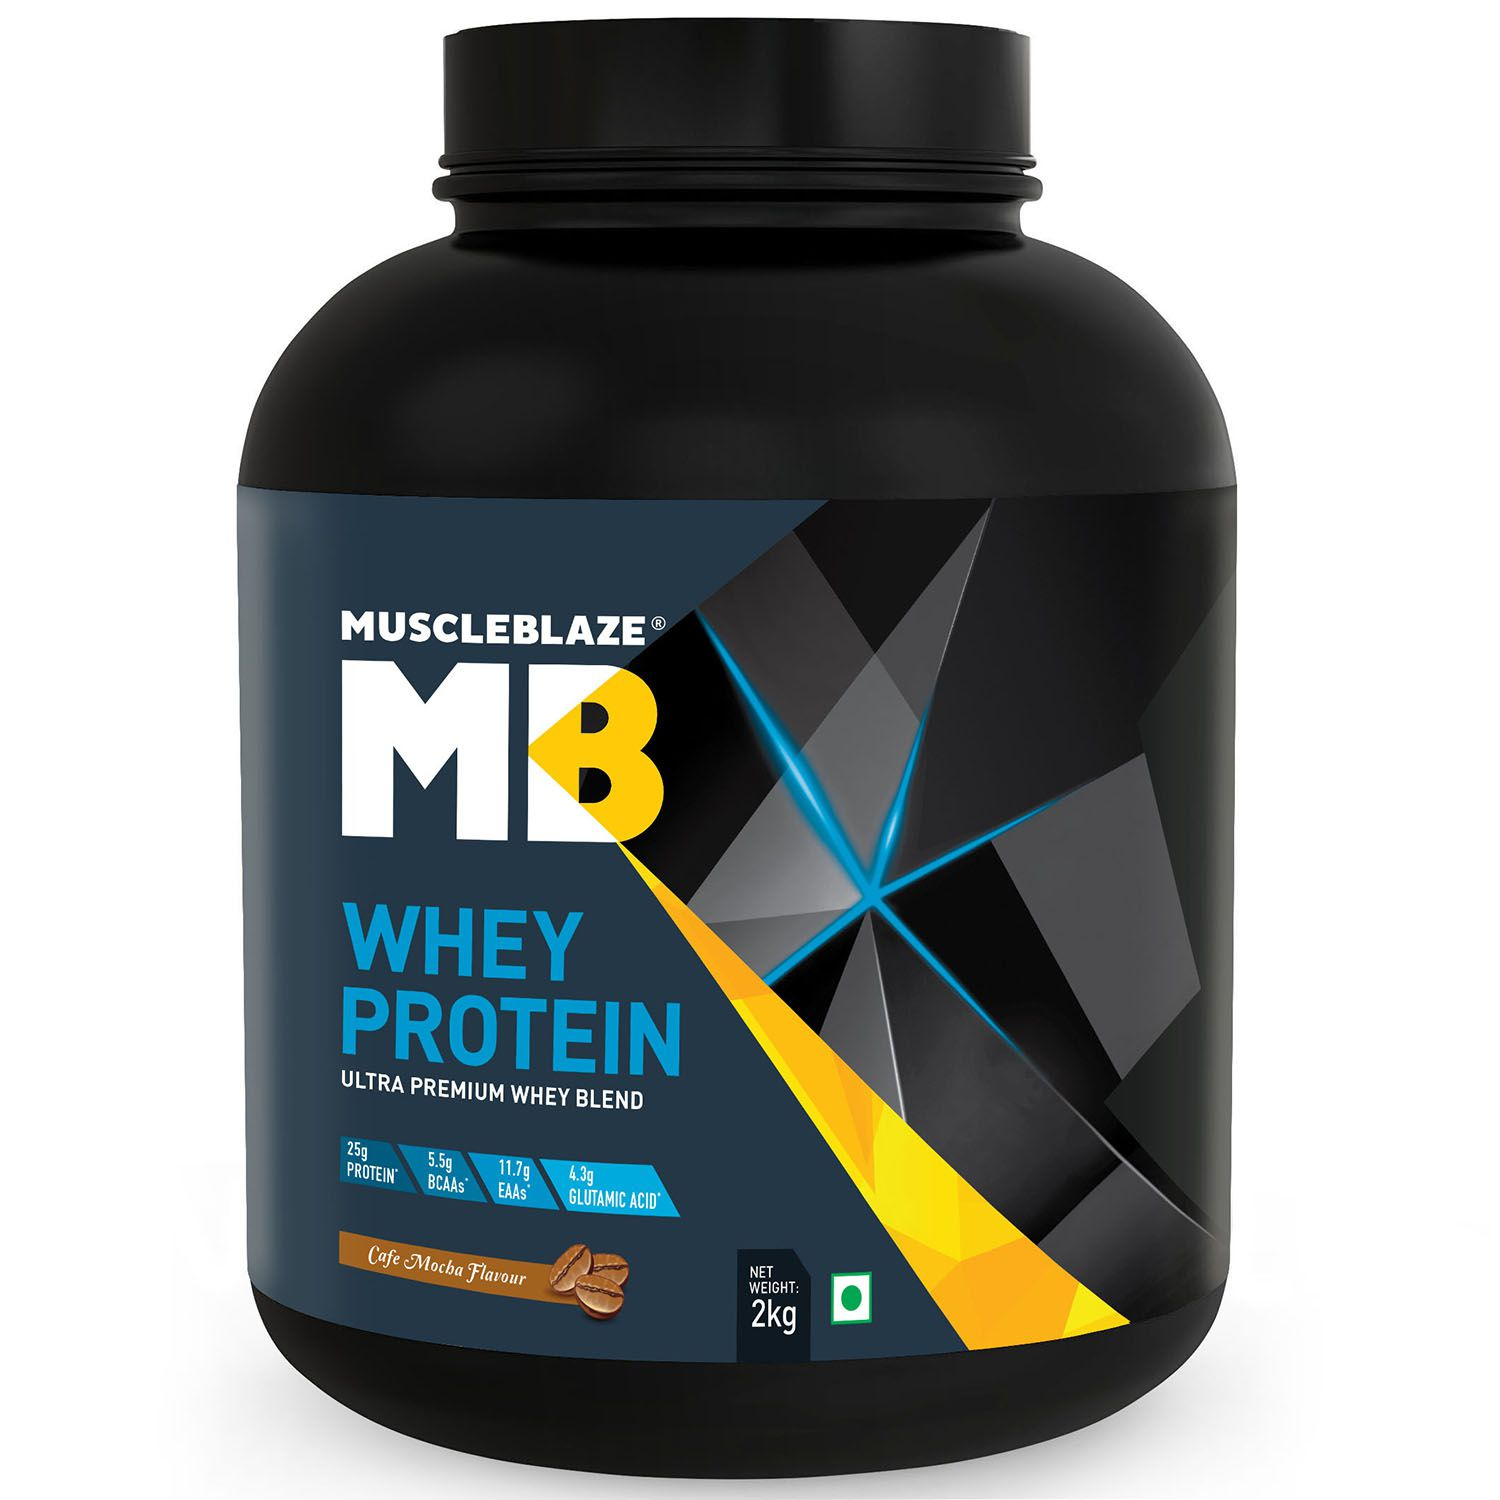 MuscleBlaze 100% Whey Protein Supplement Powder with Digestive Enzyme, 4.4 lb/ 2 kg, 60 Servings (Cafe Mocha)